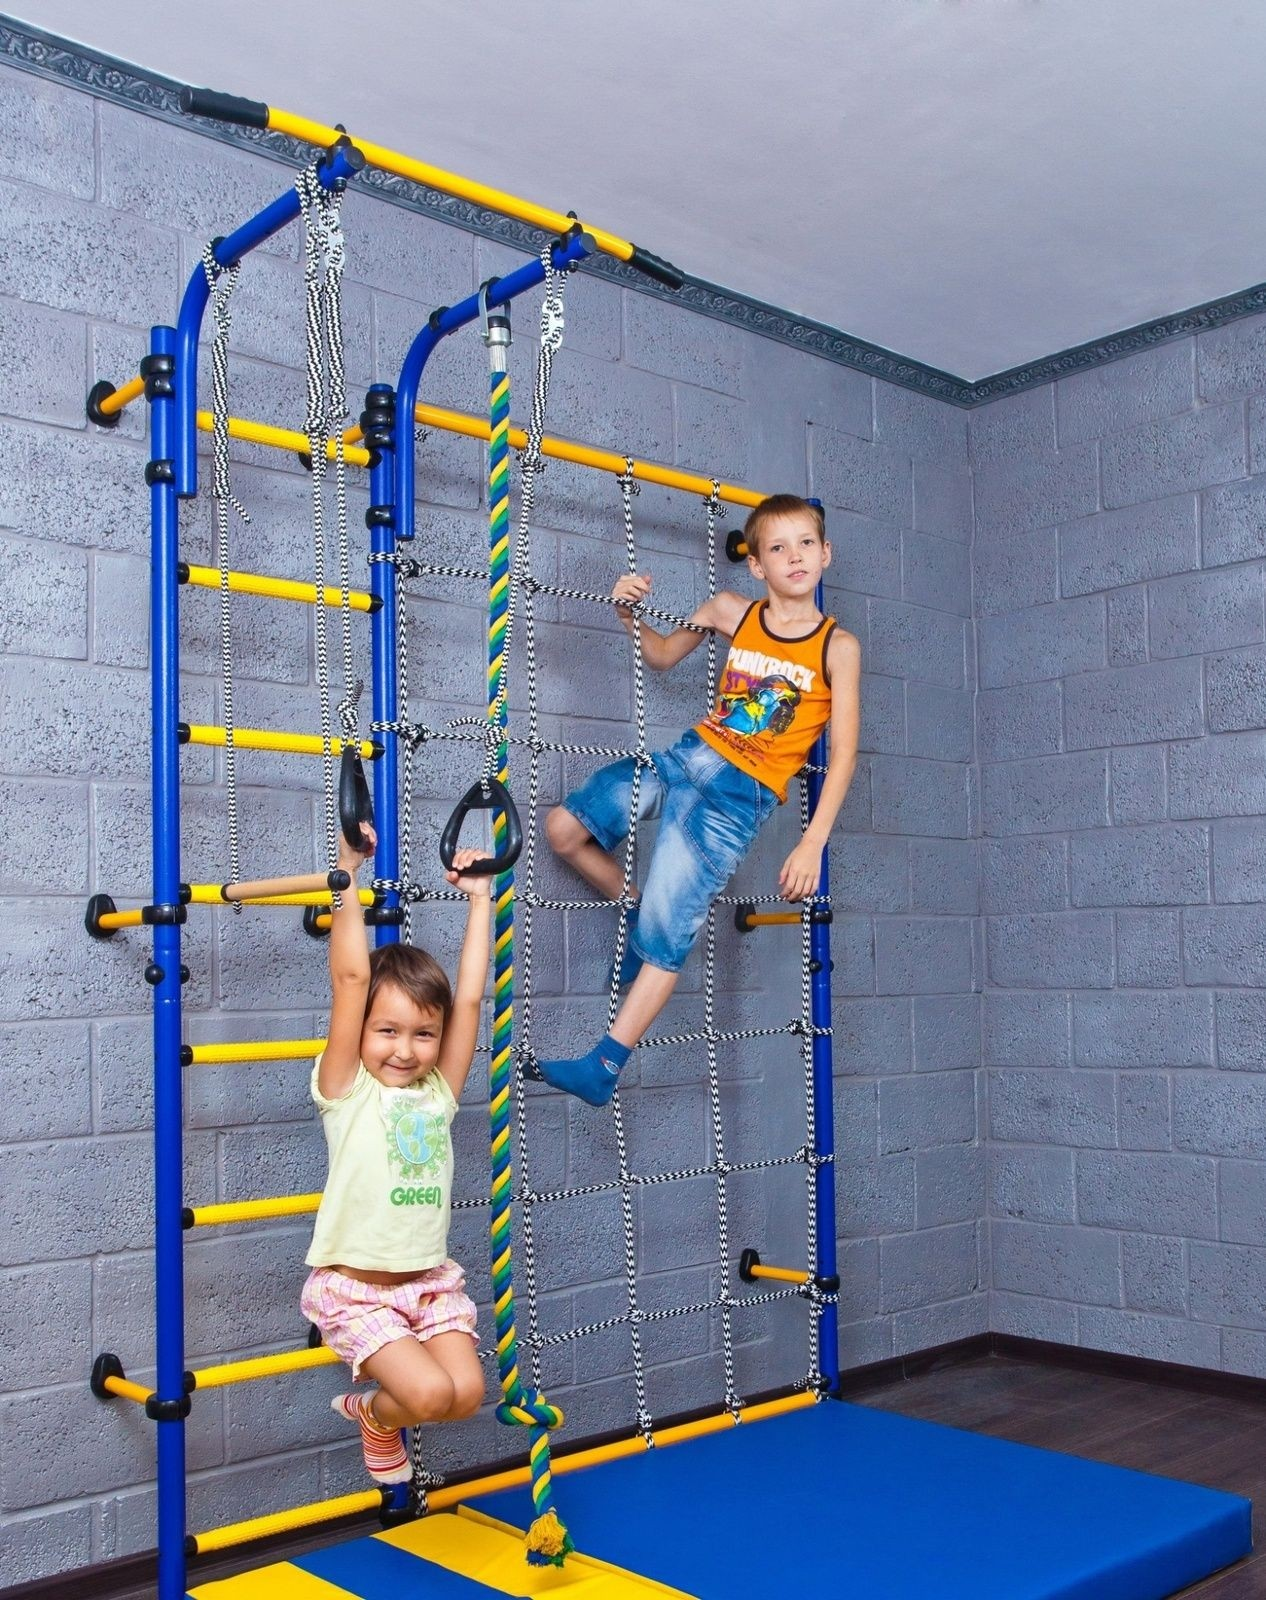 Pvc pipe exercise equipment